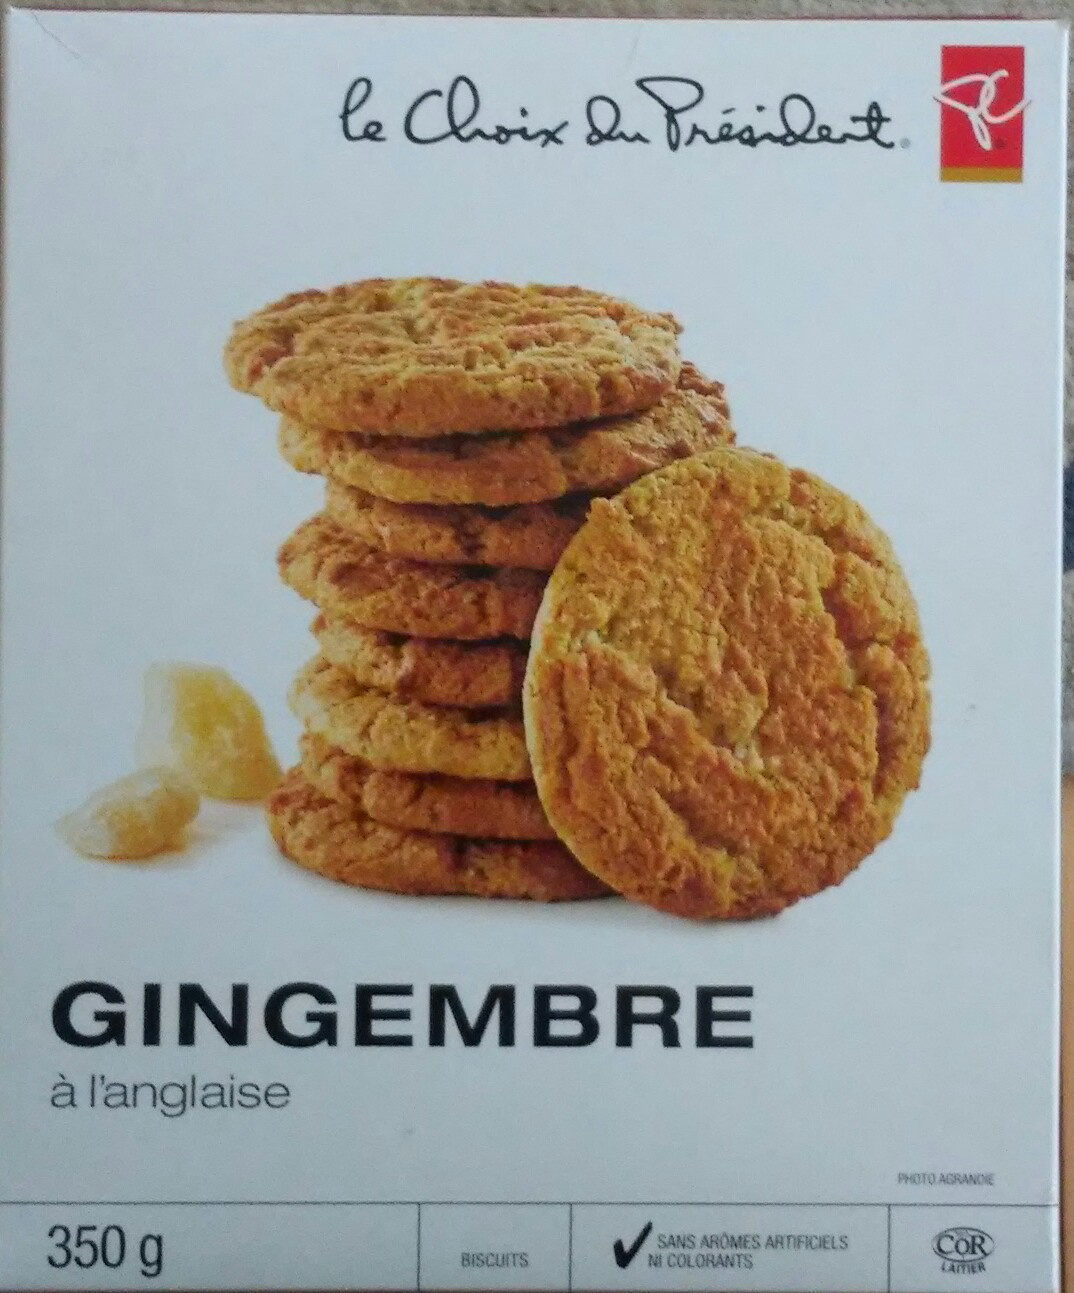 Gingembre à l'anglaise - Product - fr